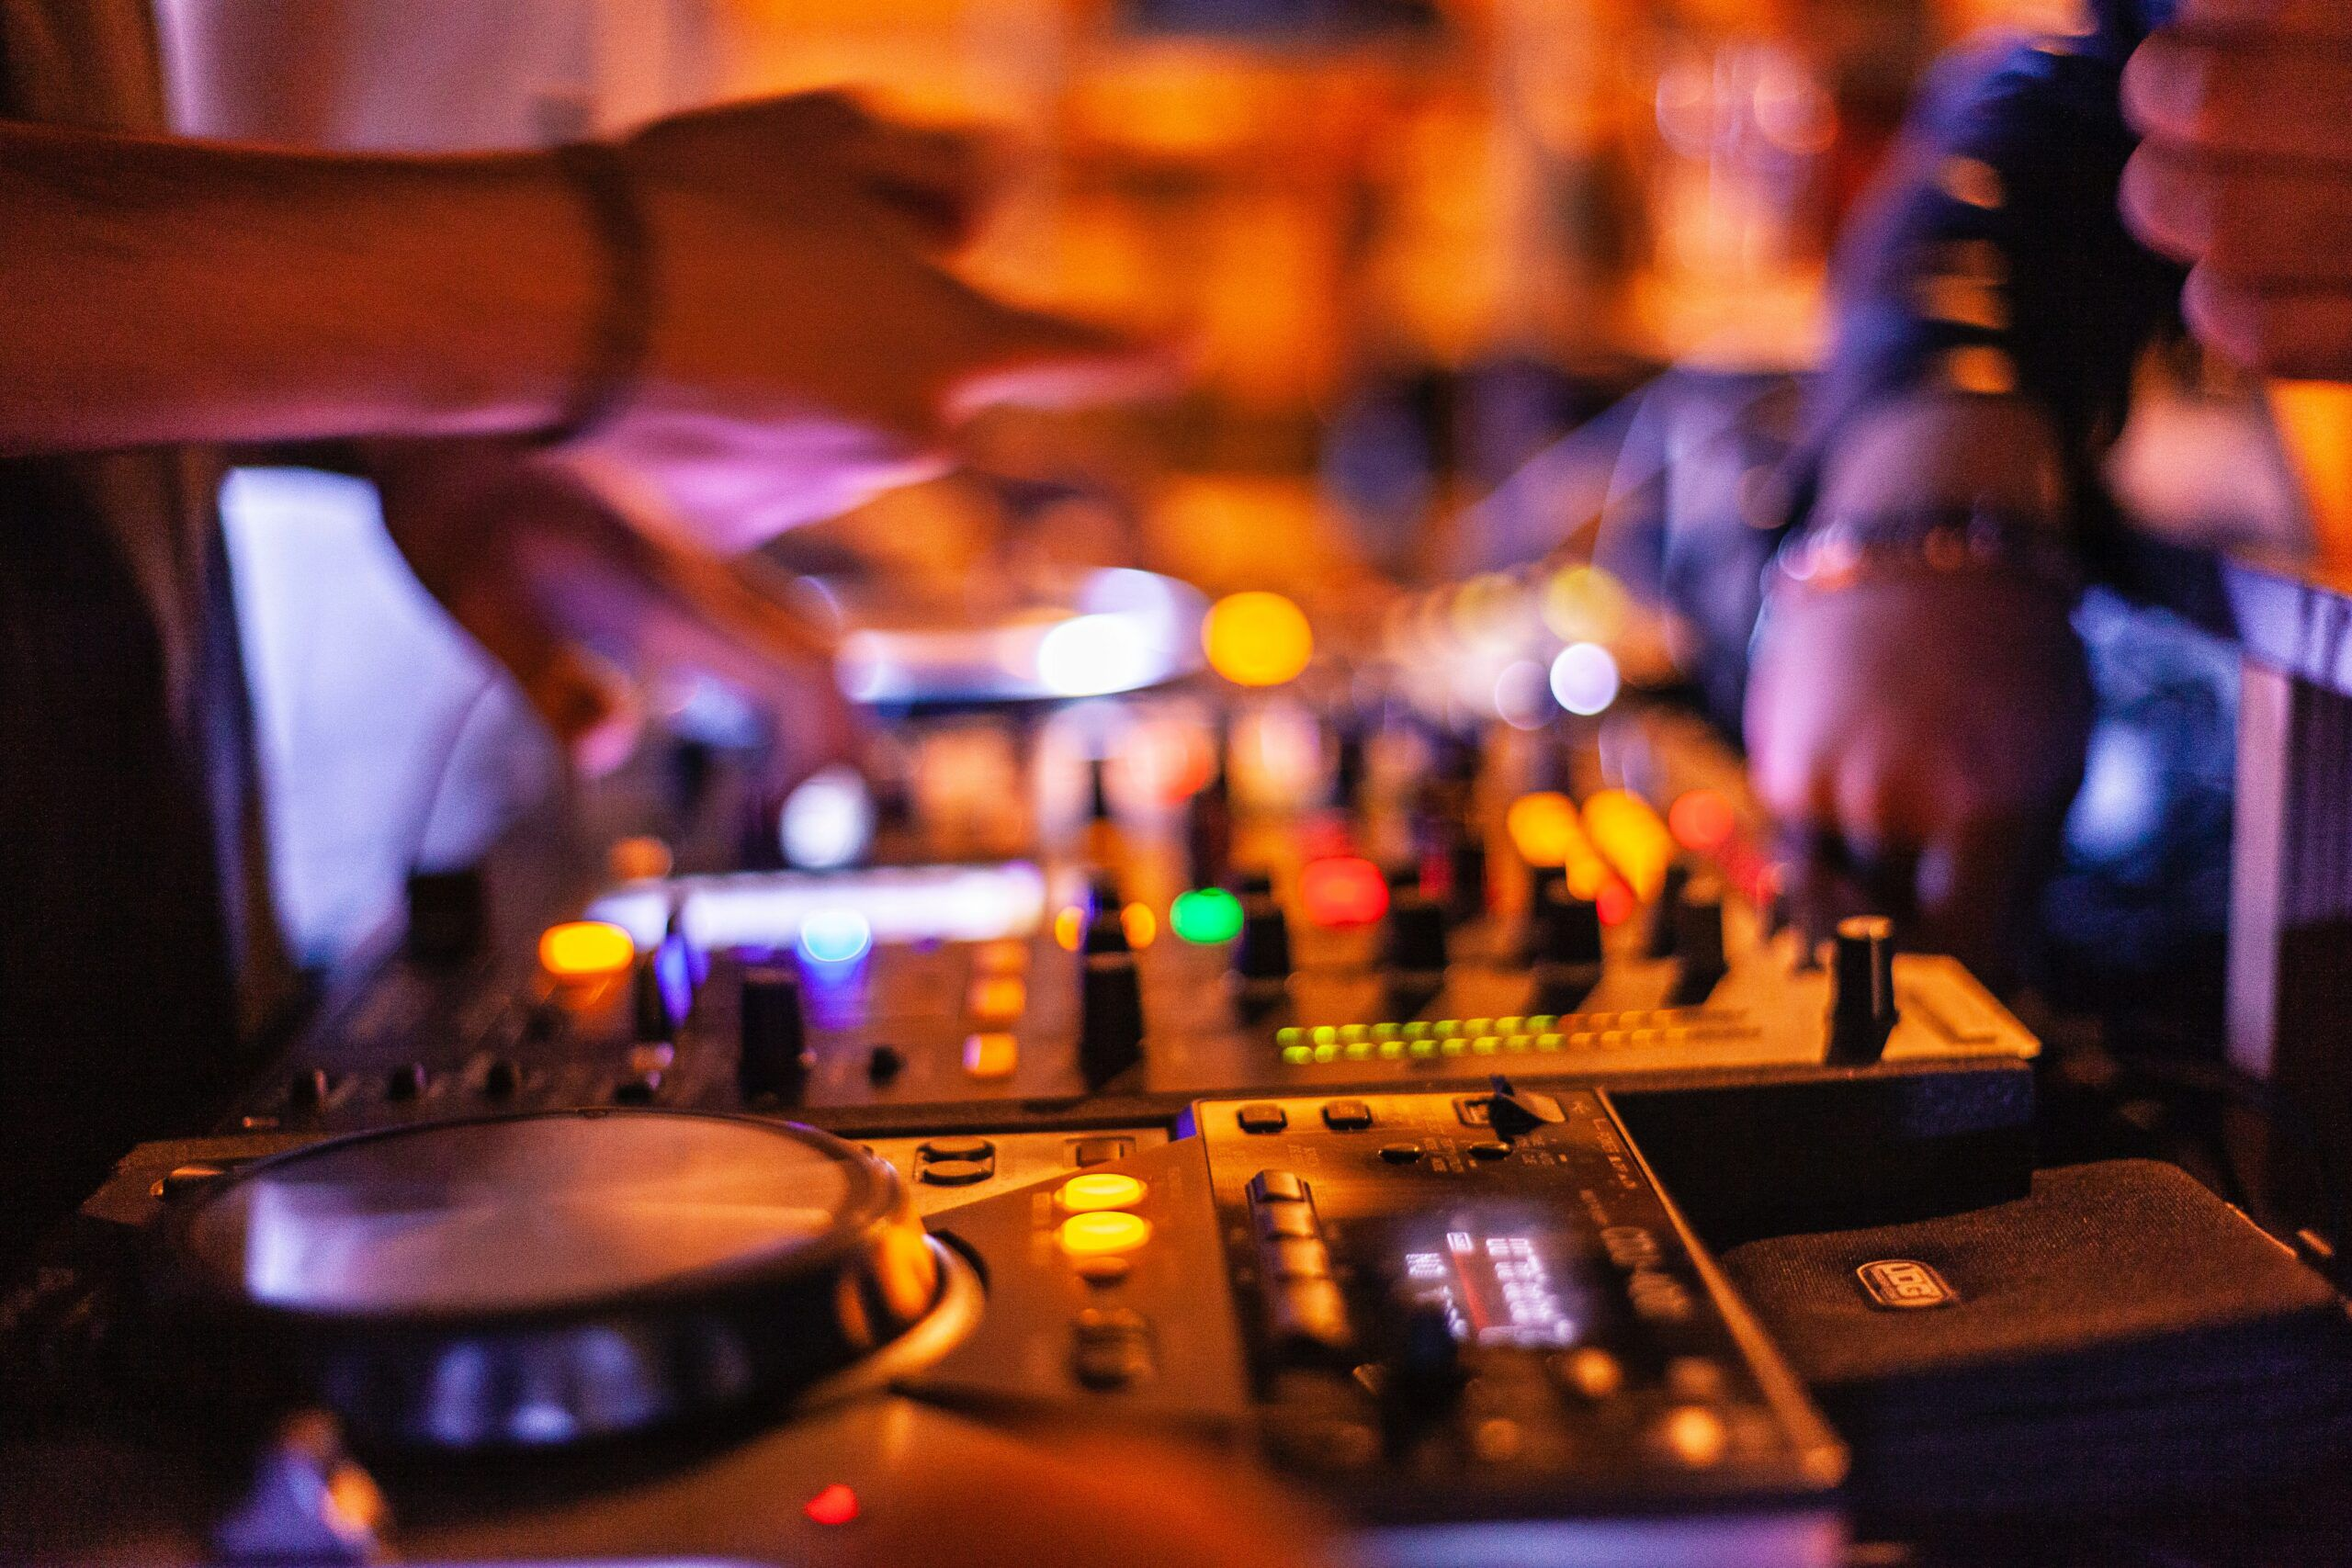 Returning to IRL DJ gigs? Here's 7 ways to quell stage anxiety without alcohol.